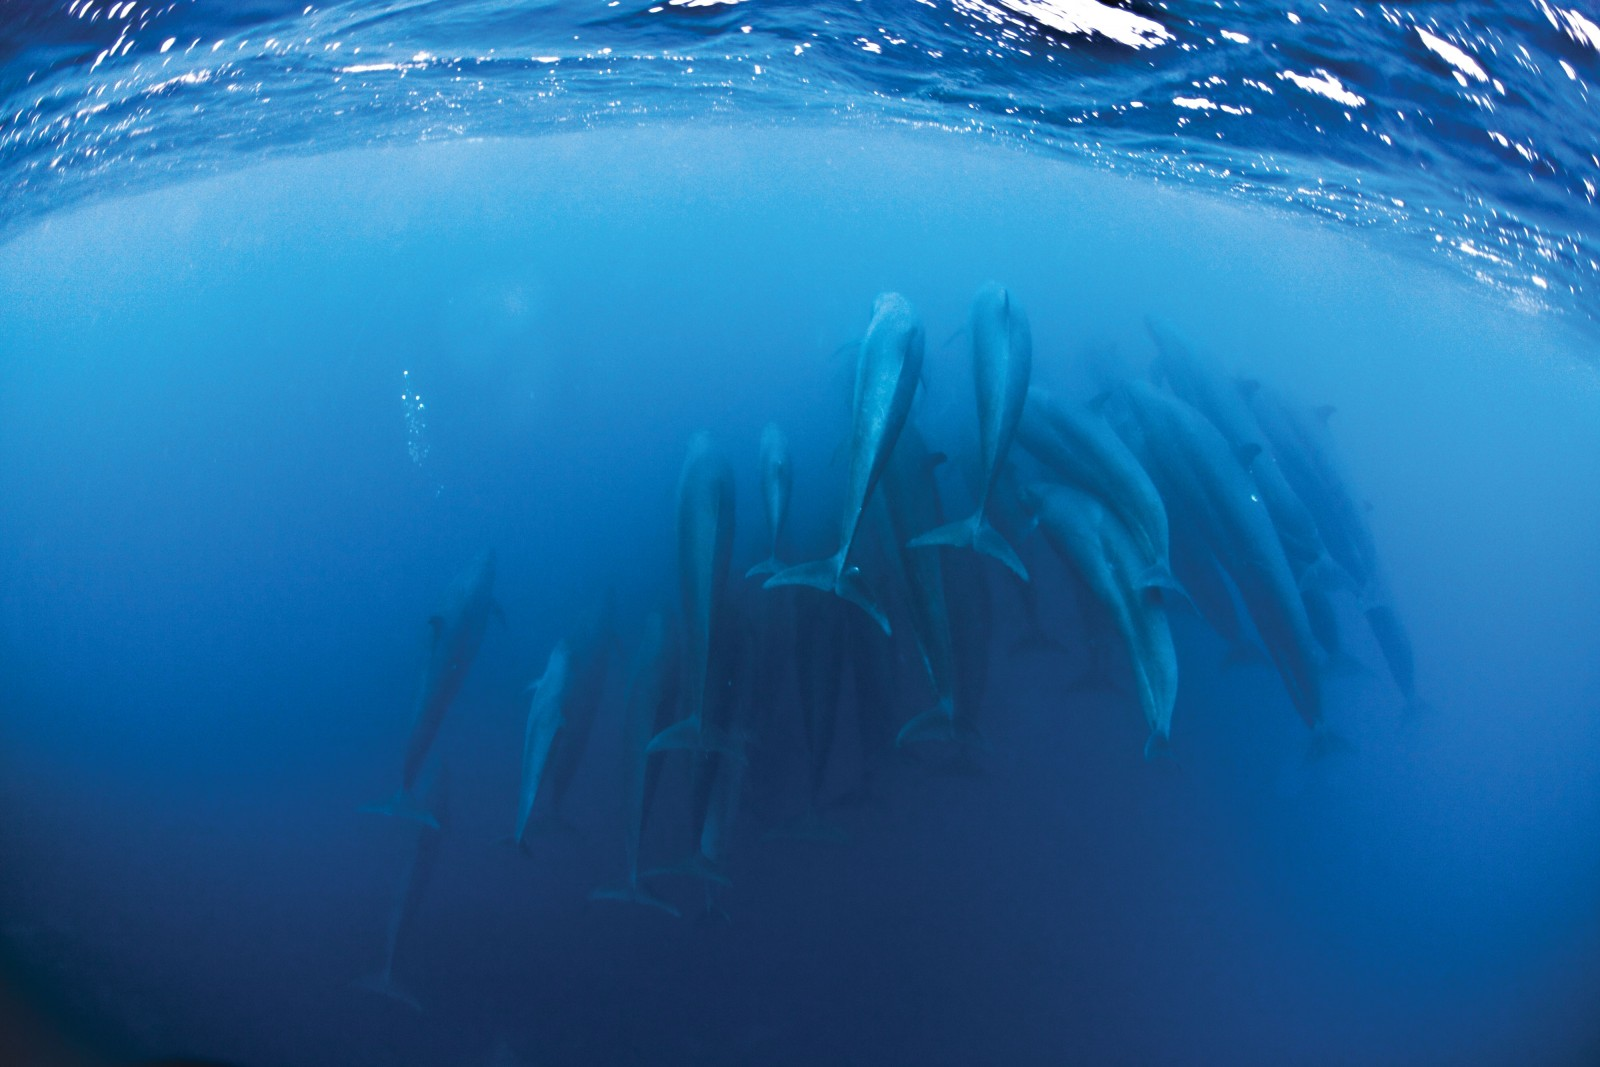 With at least 27 individuals captured in one image, a group of Pseudorca crassidens (false killer whales) head off into the blue. Typically pelagic (found in open ocean waters), their offshore distribution makes them difficult to study and therefore little is known about their lives. Like other dolphins, Pseudorca are very tactile, often touching each other whilst swimming—in this case brushing tails and pectoral fins over each other.